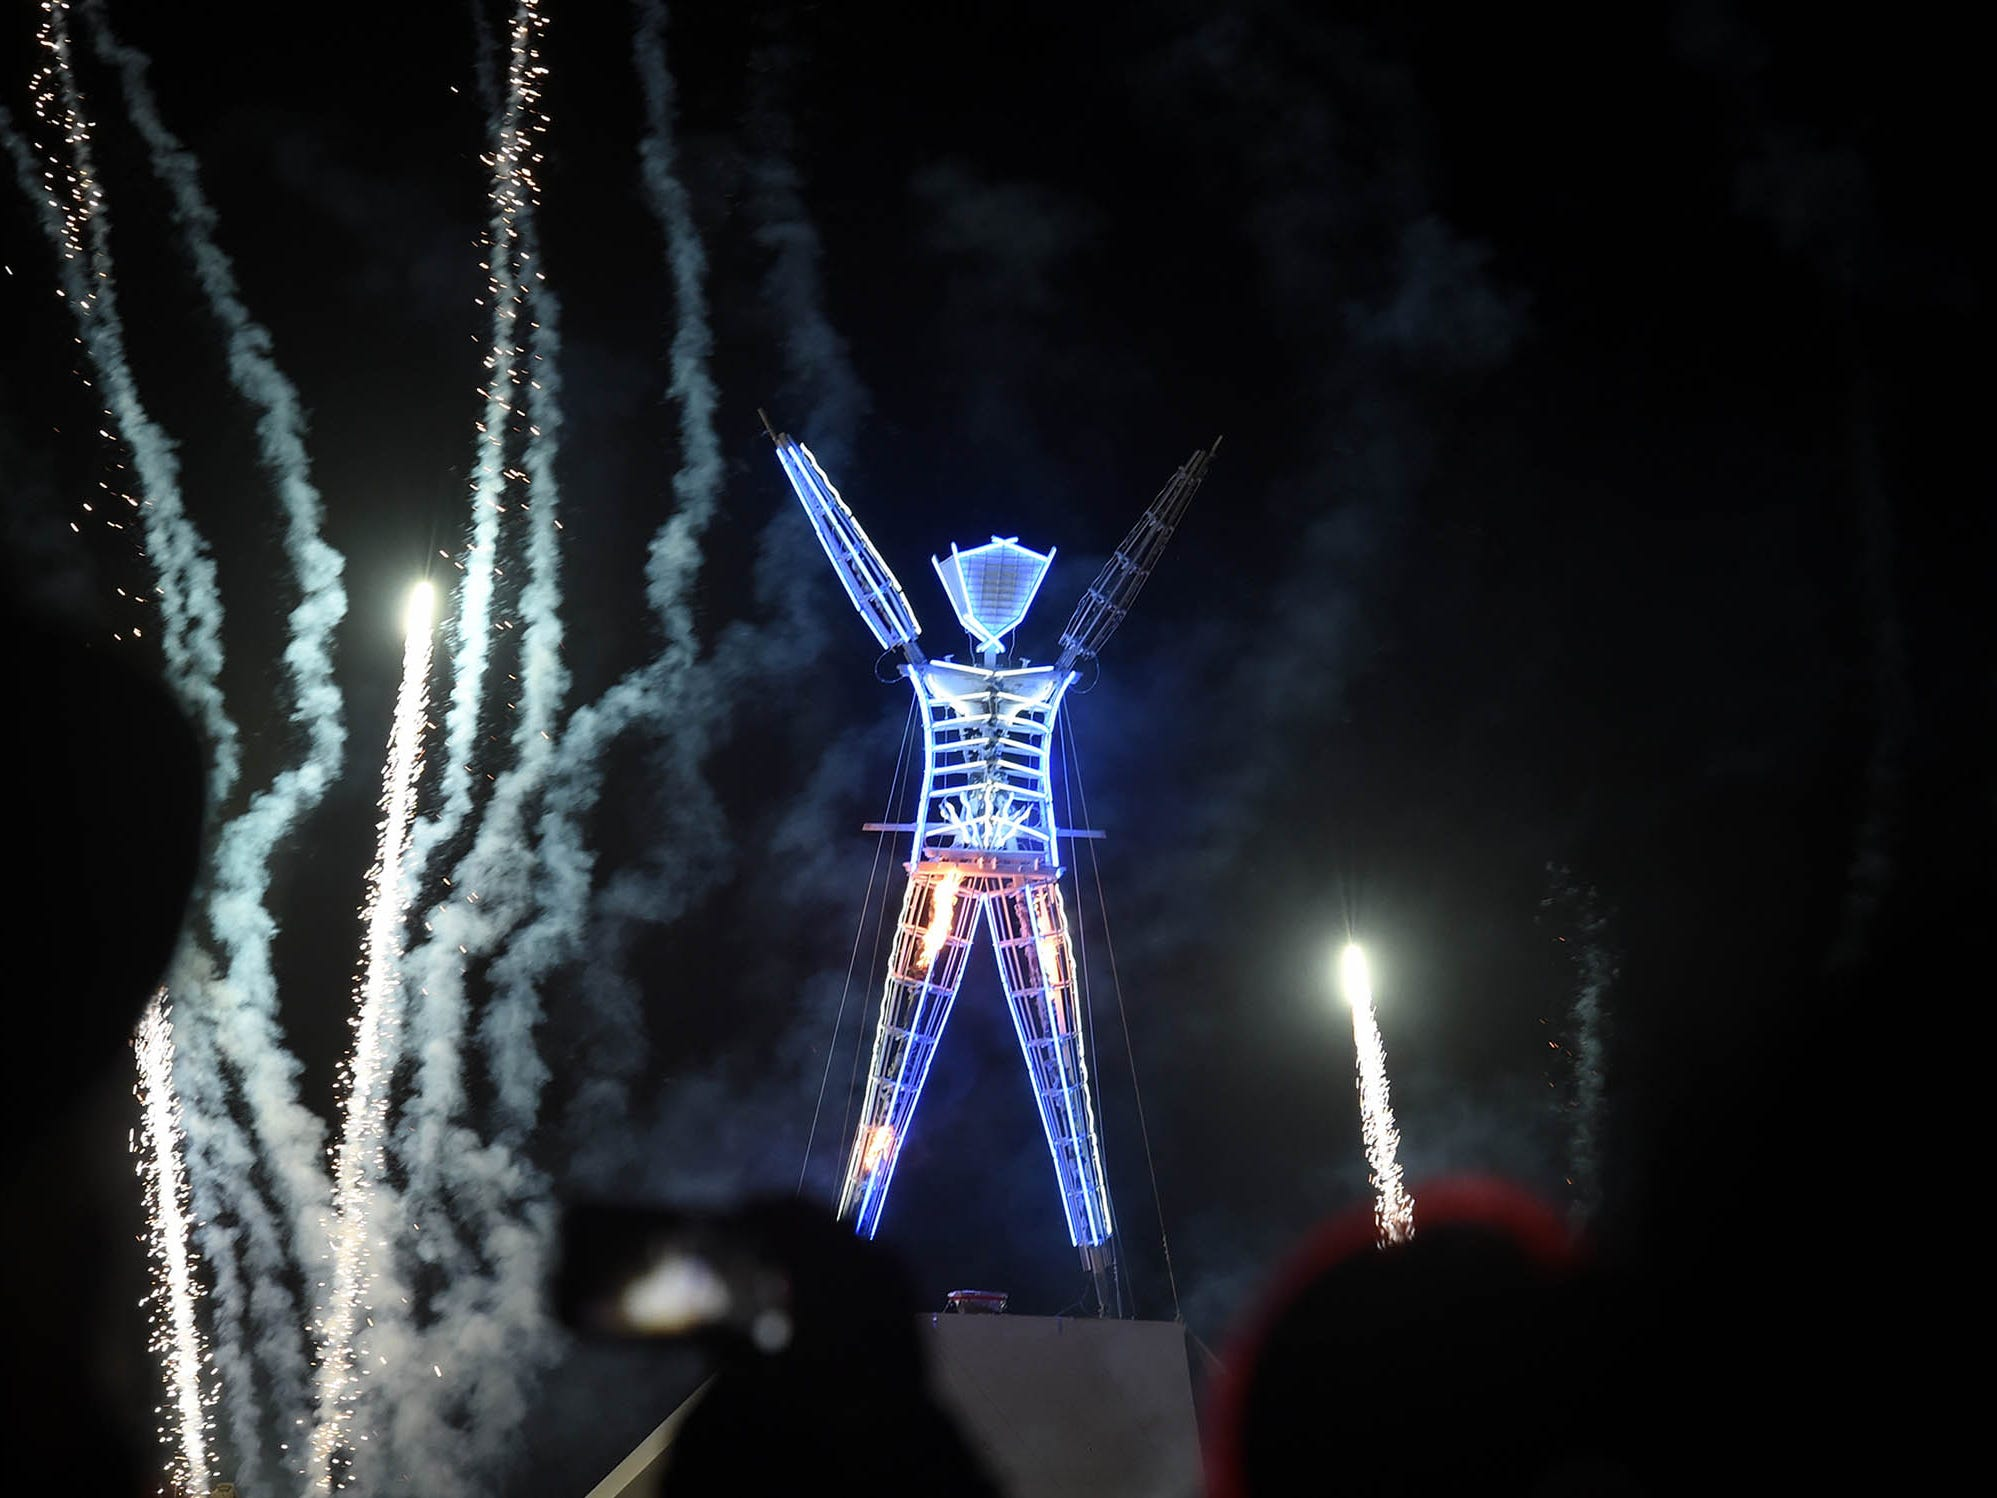 The Man effigy at Burning Man 2018.